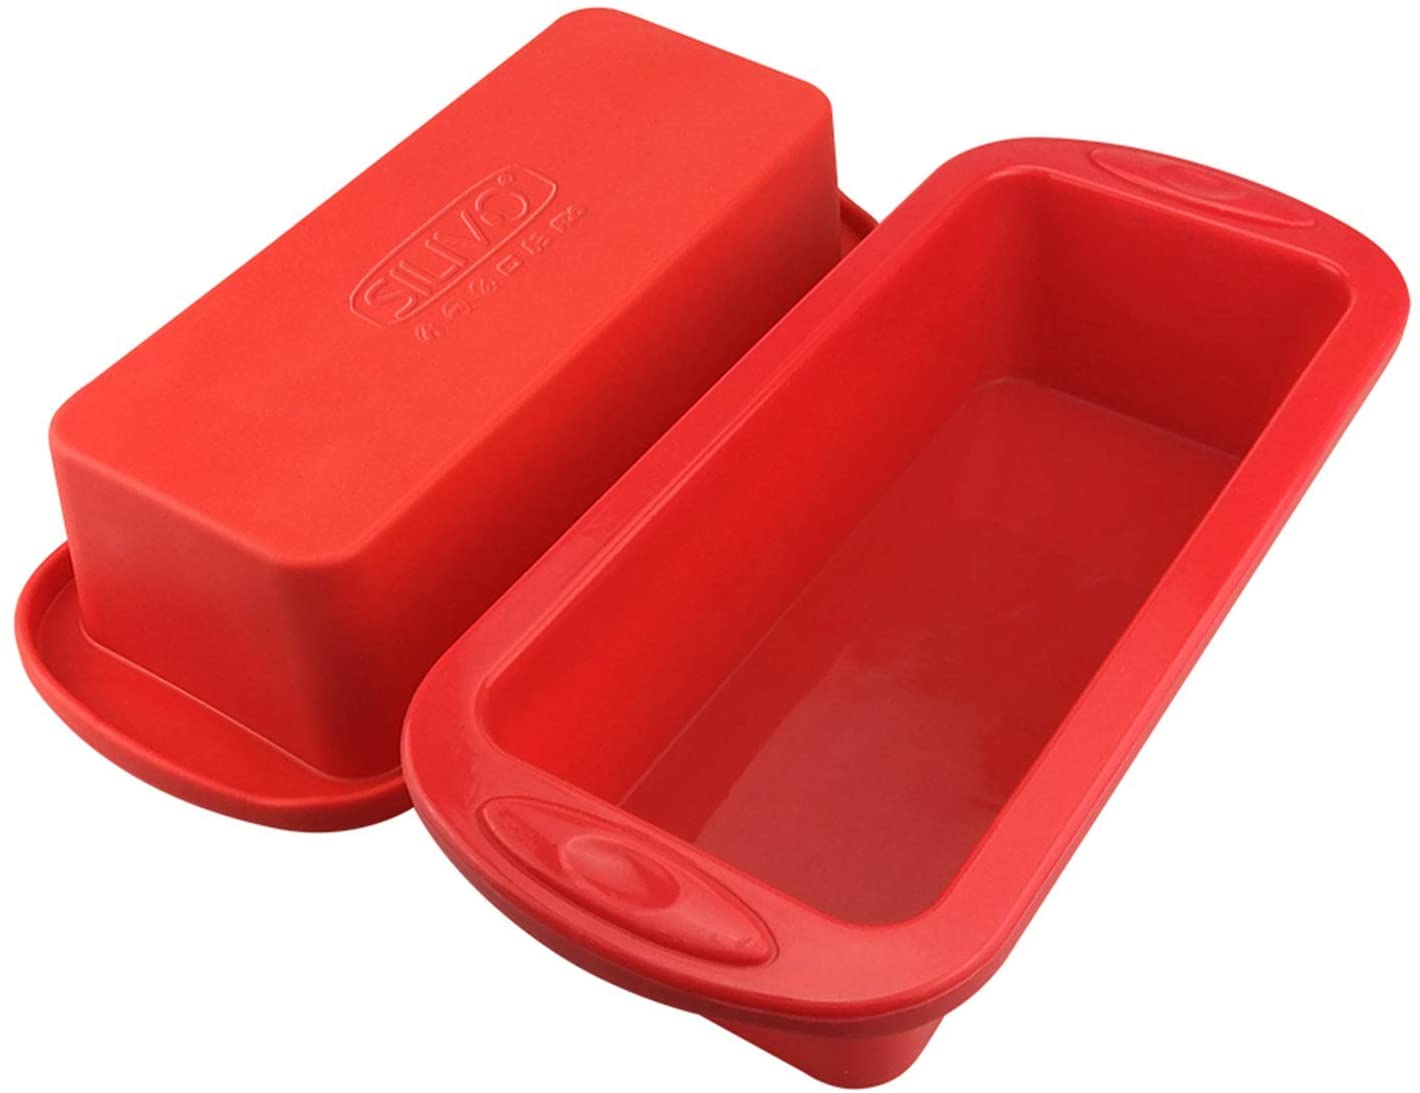 Silicone Loaf Pans